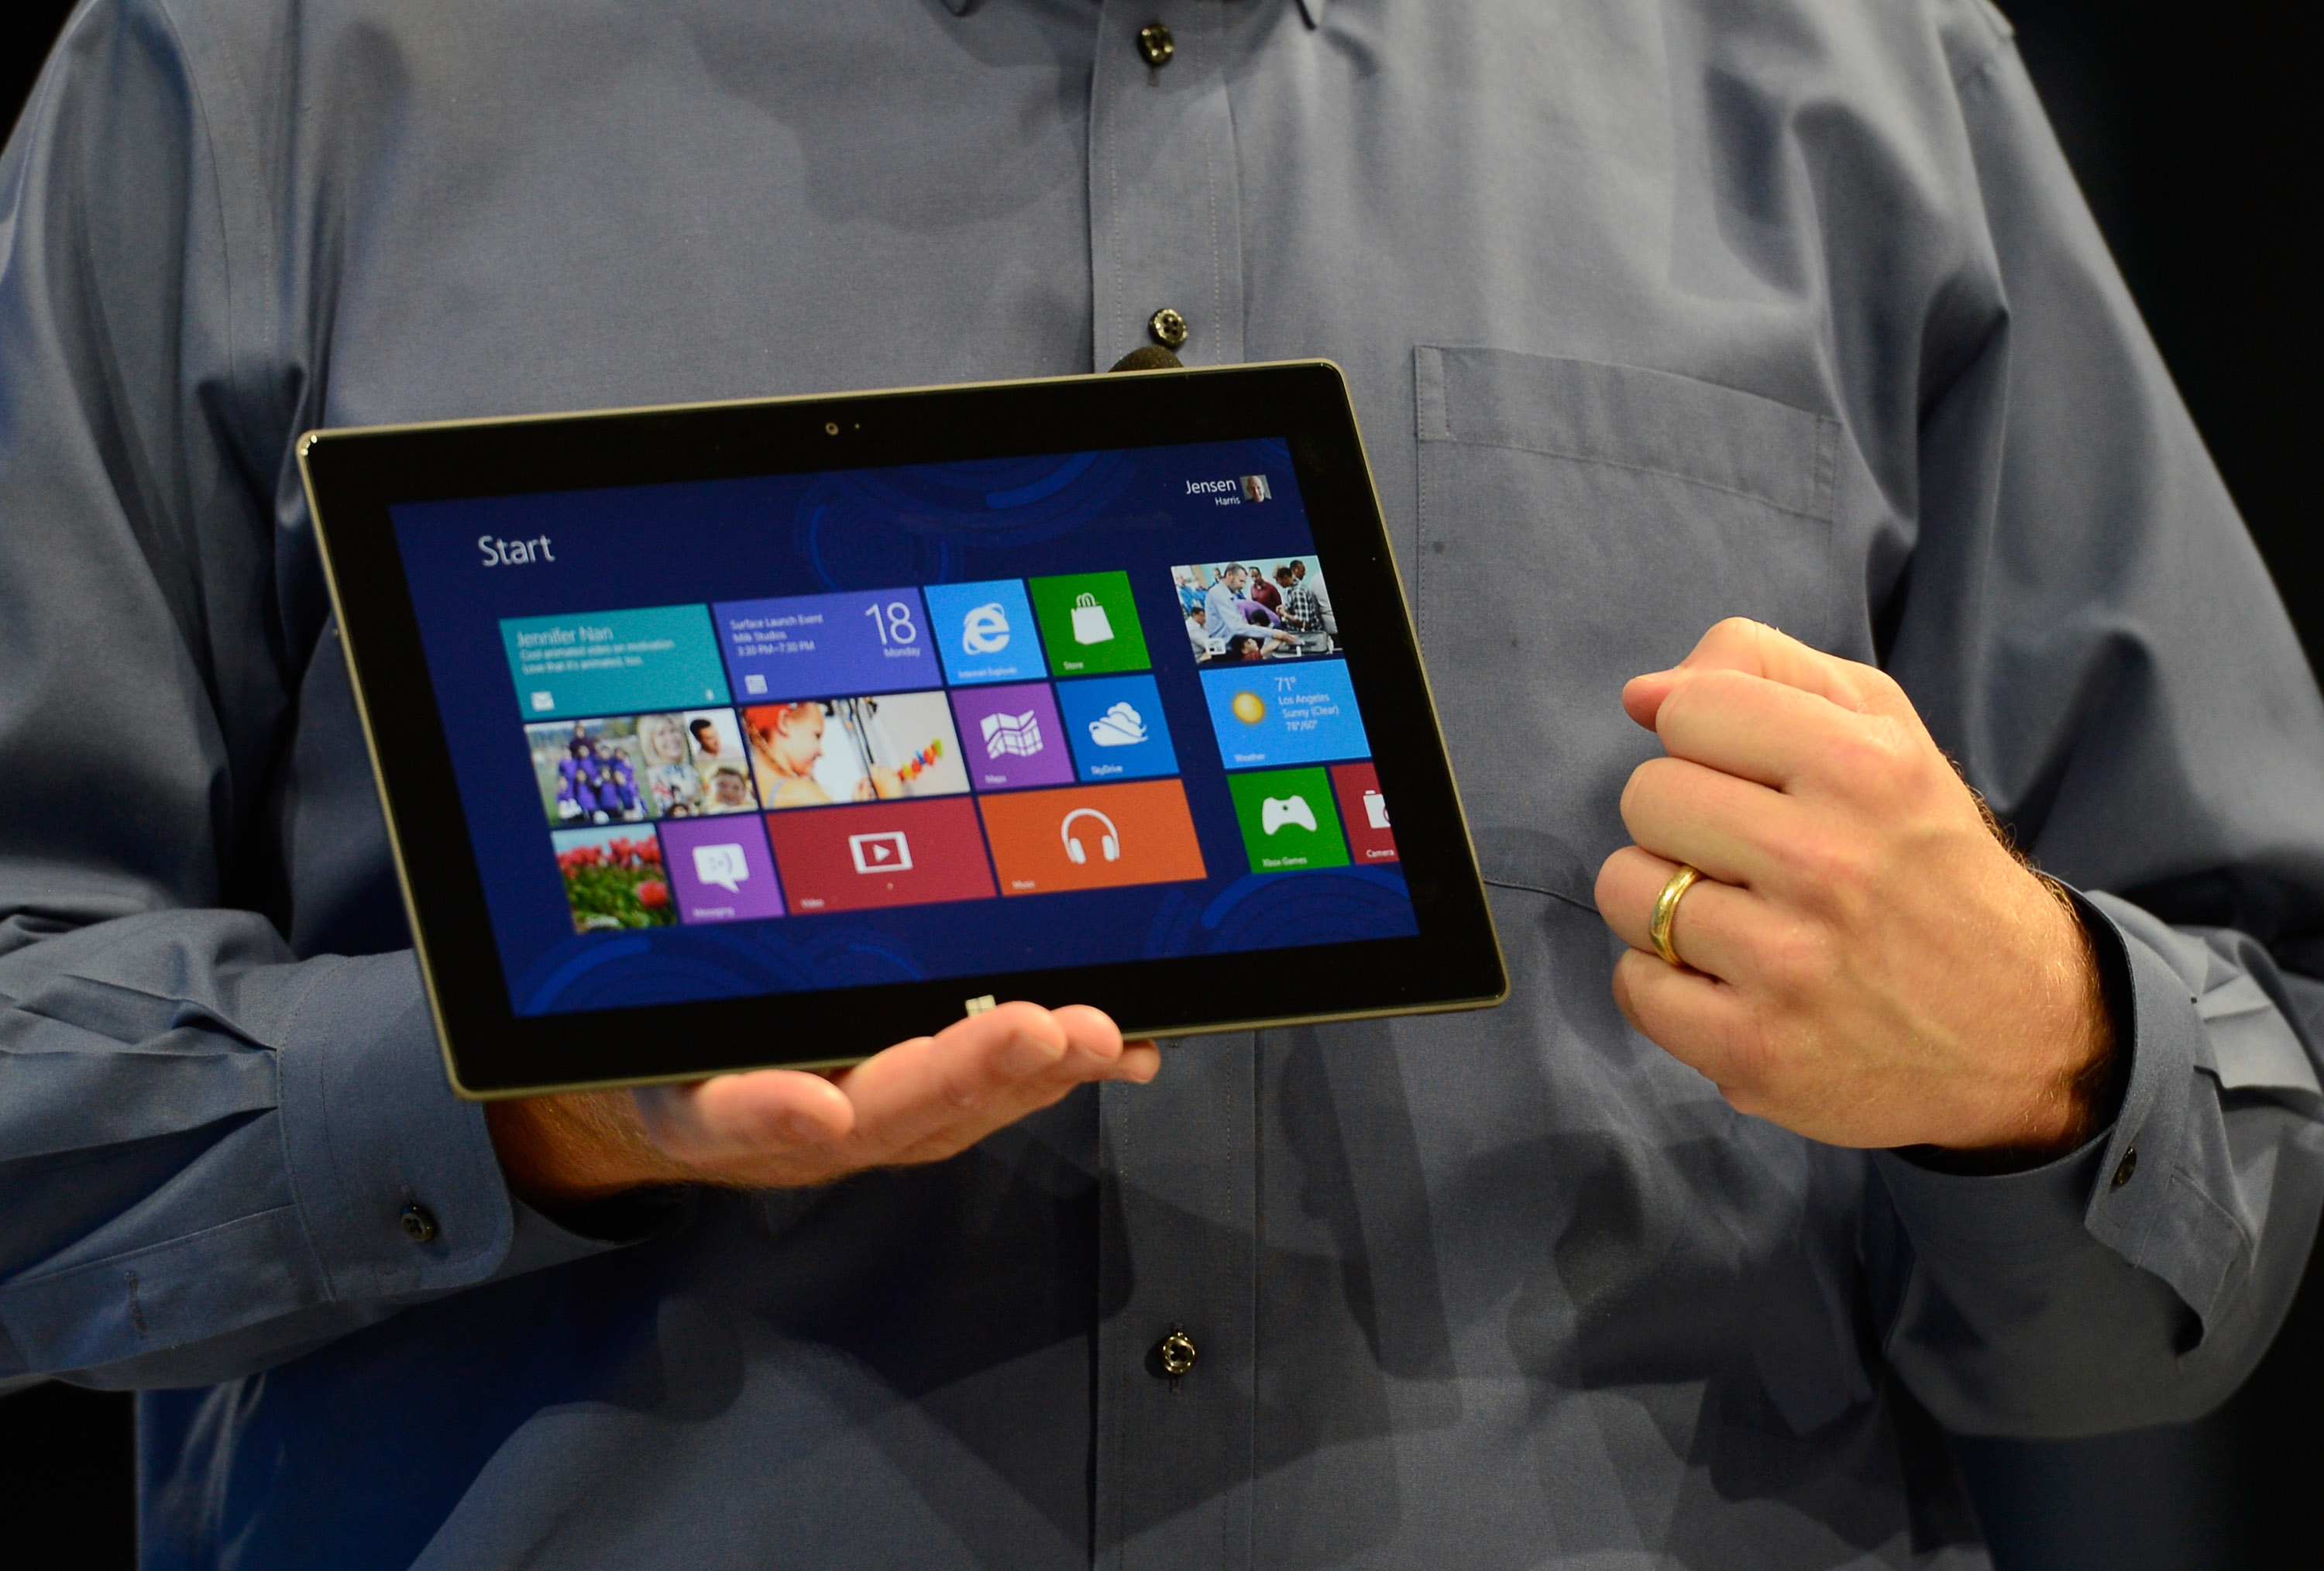 Microsoft Slashes Surface Pro's Price by $100 Until End of 2013